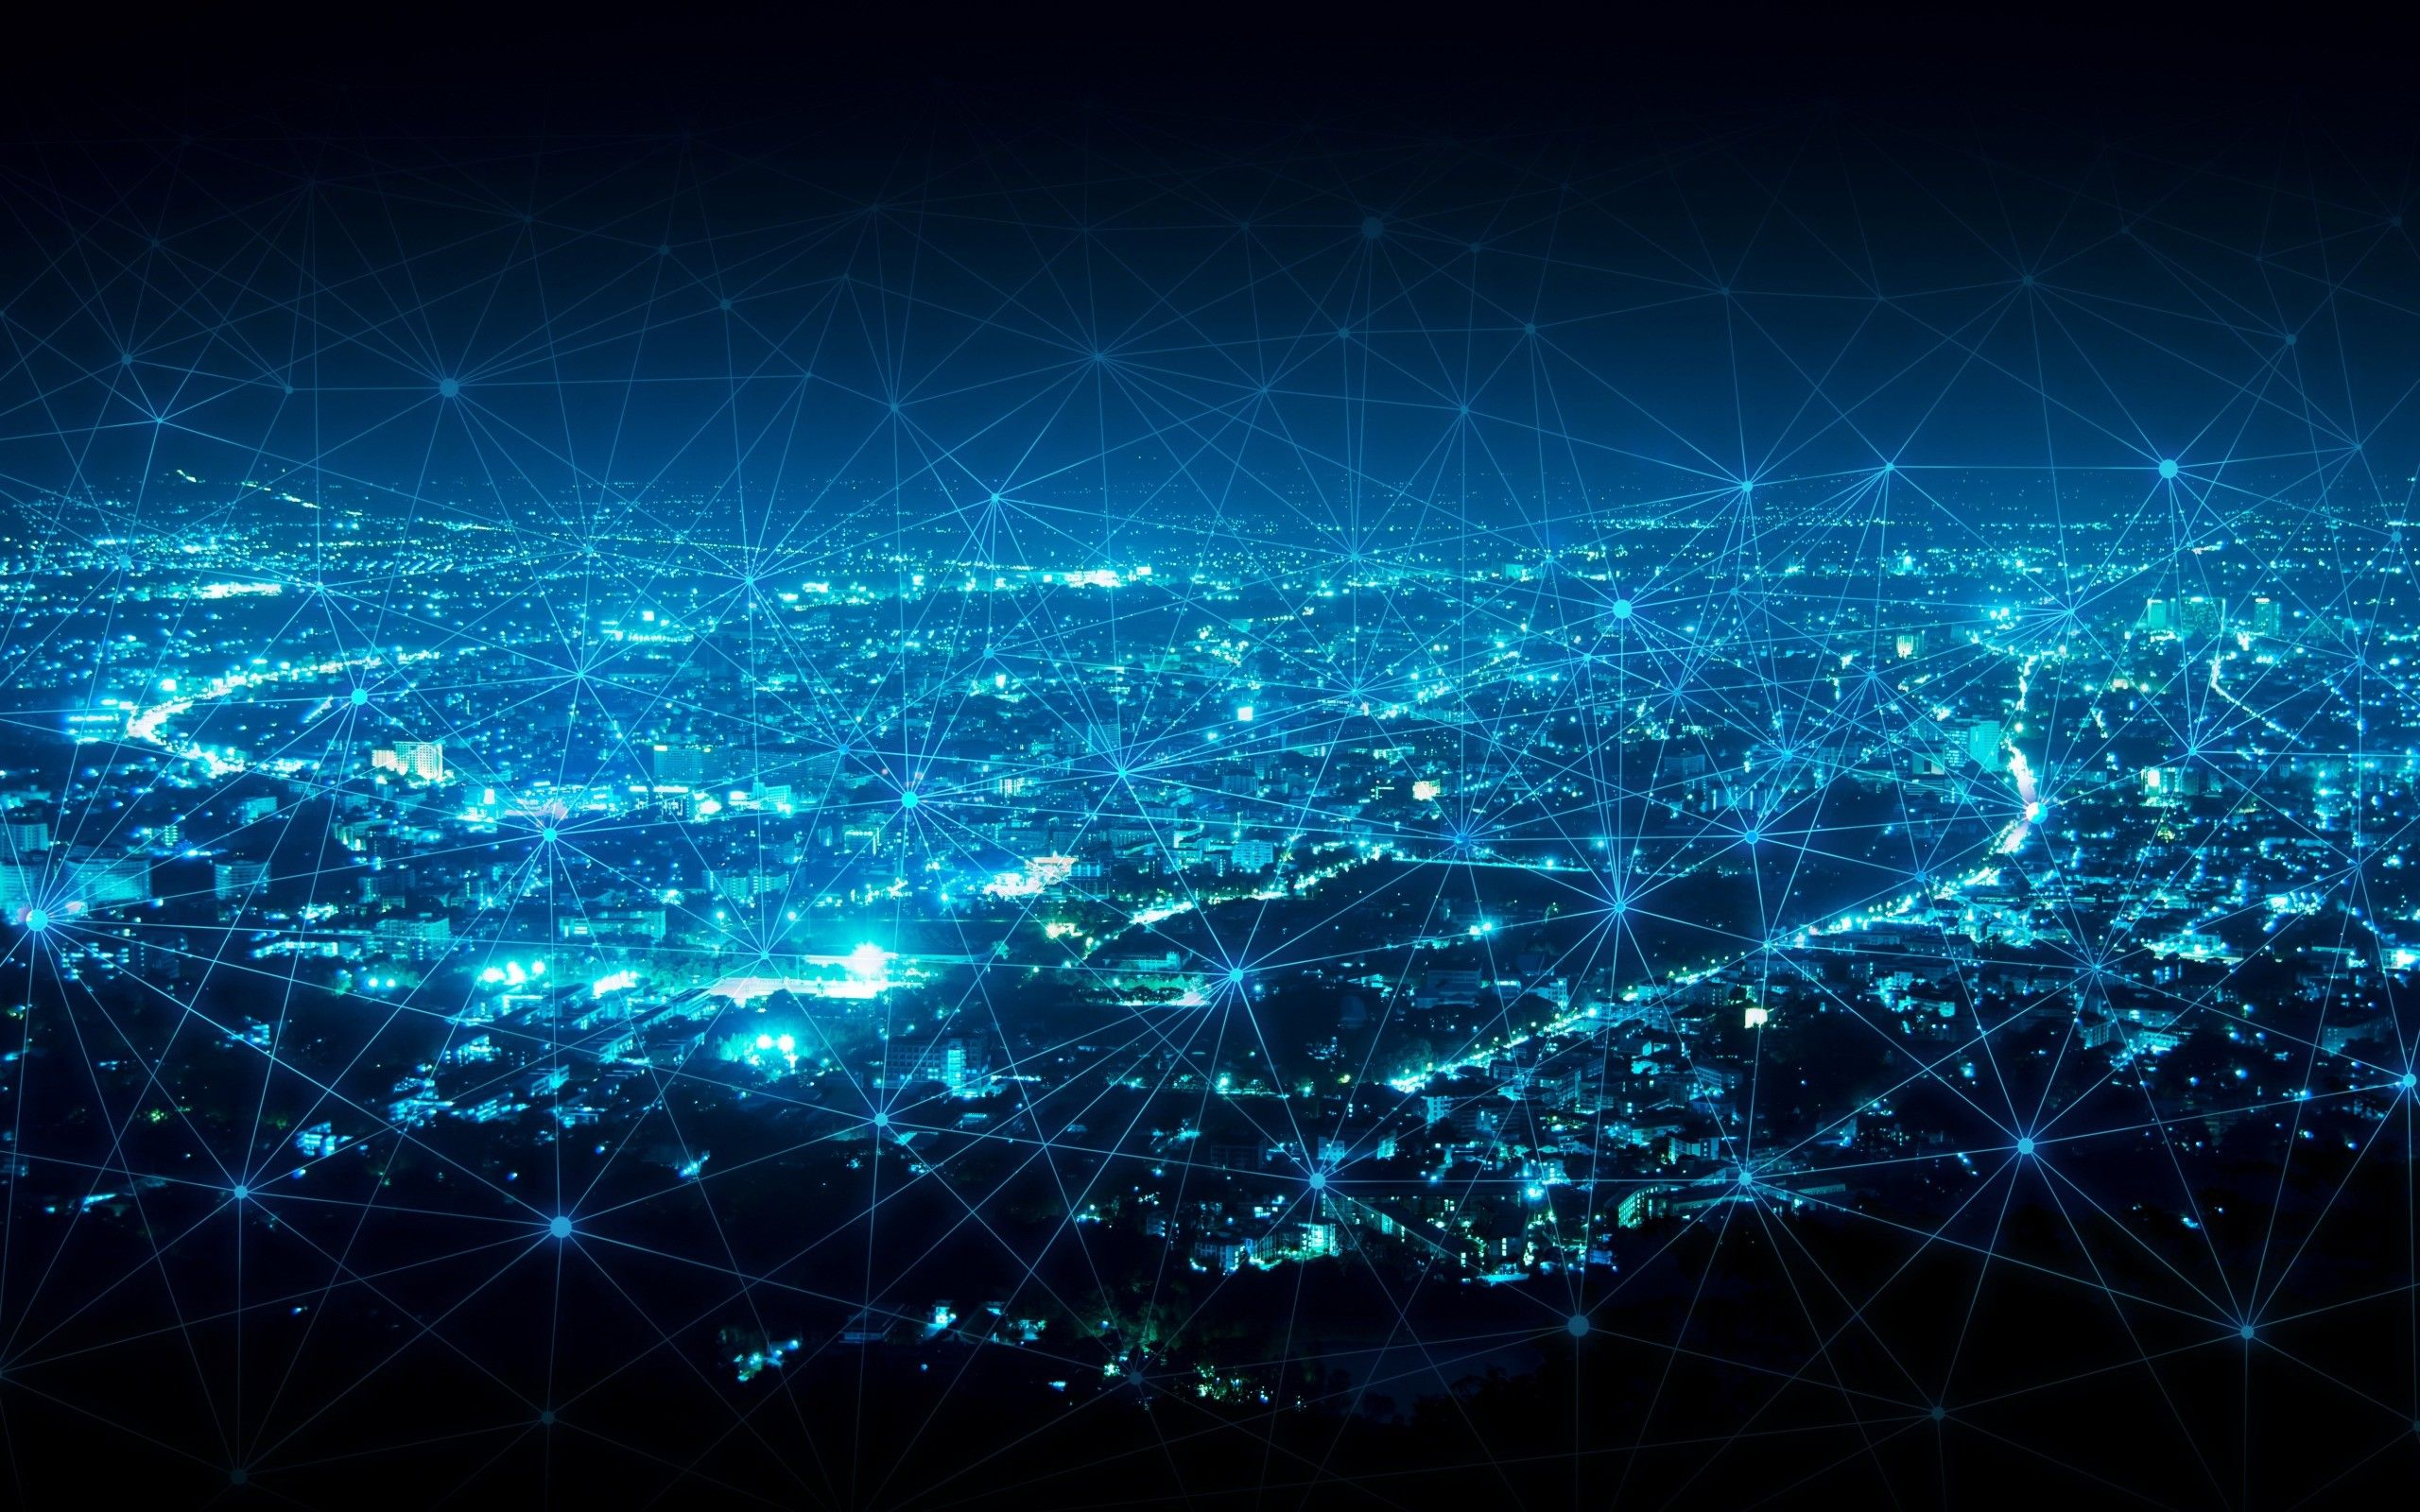 Res 2560x1600 Computer Networks Network Technologies Blue Neon Lines Modern City Network Concepts City Background Night City Abstract Lines